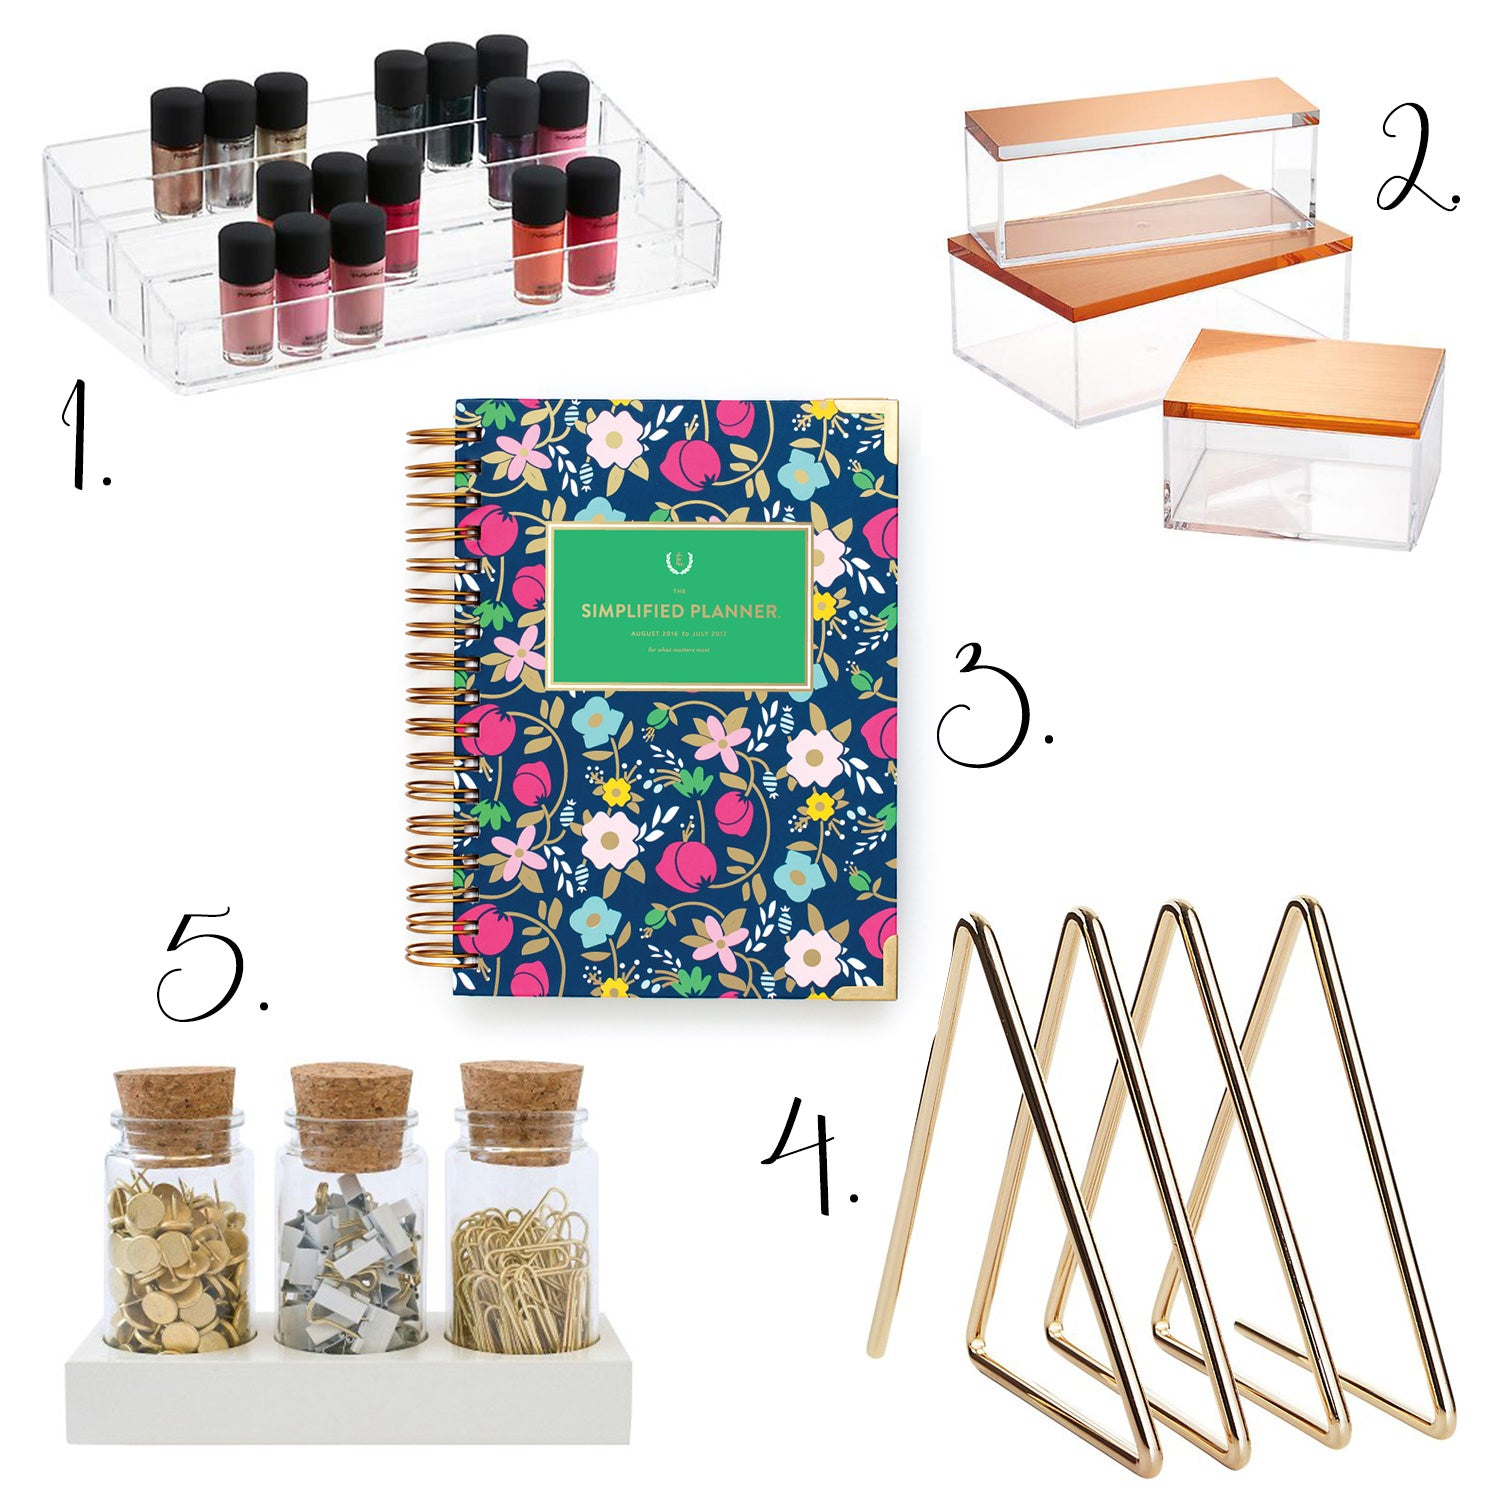 container store, acrylic nail polish organizer, copper containers, cool storage boxes, unique day planners, modern office storage, spice jars, kitchen organization, cb2, target, emily ley, organizing products, neat ideas for the organized person, 2016 best organizing products